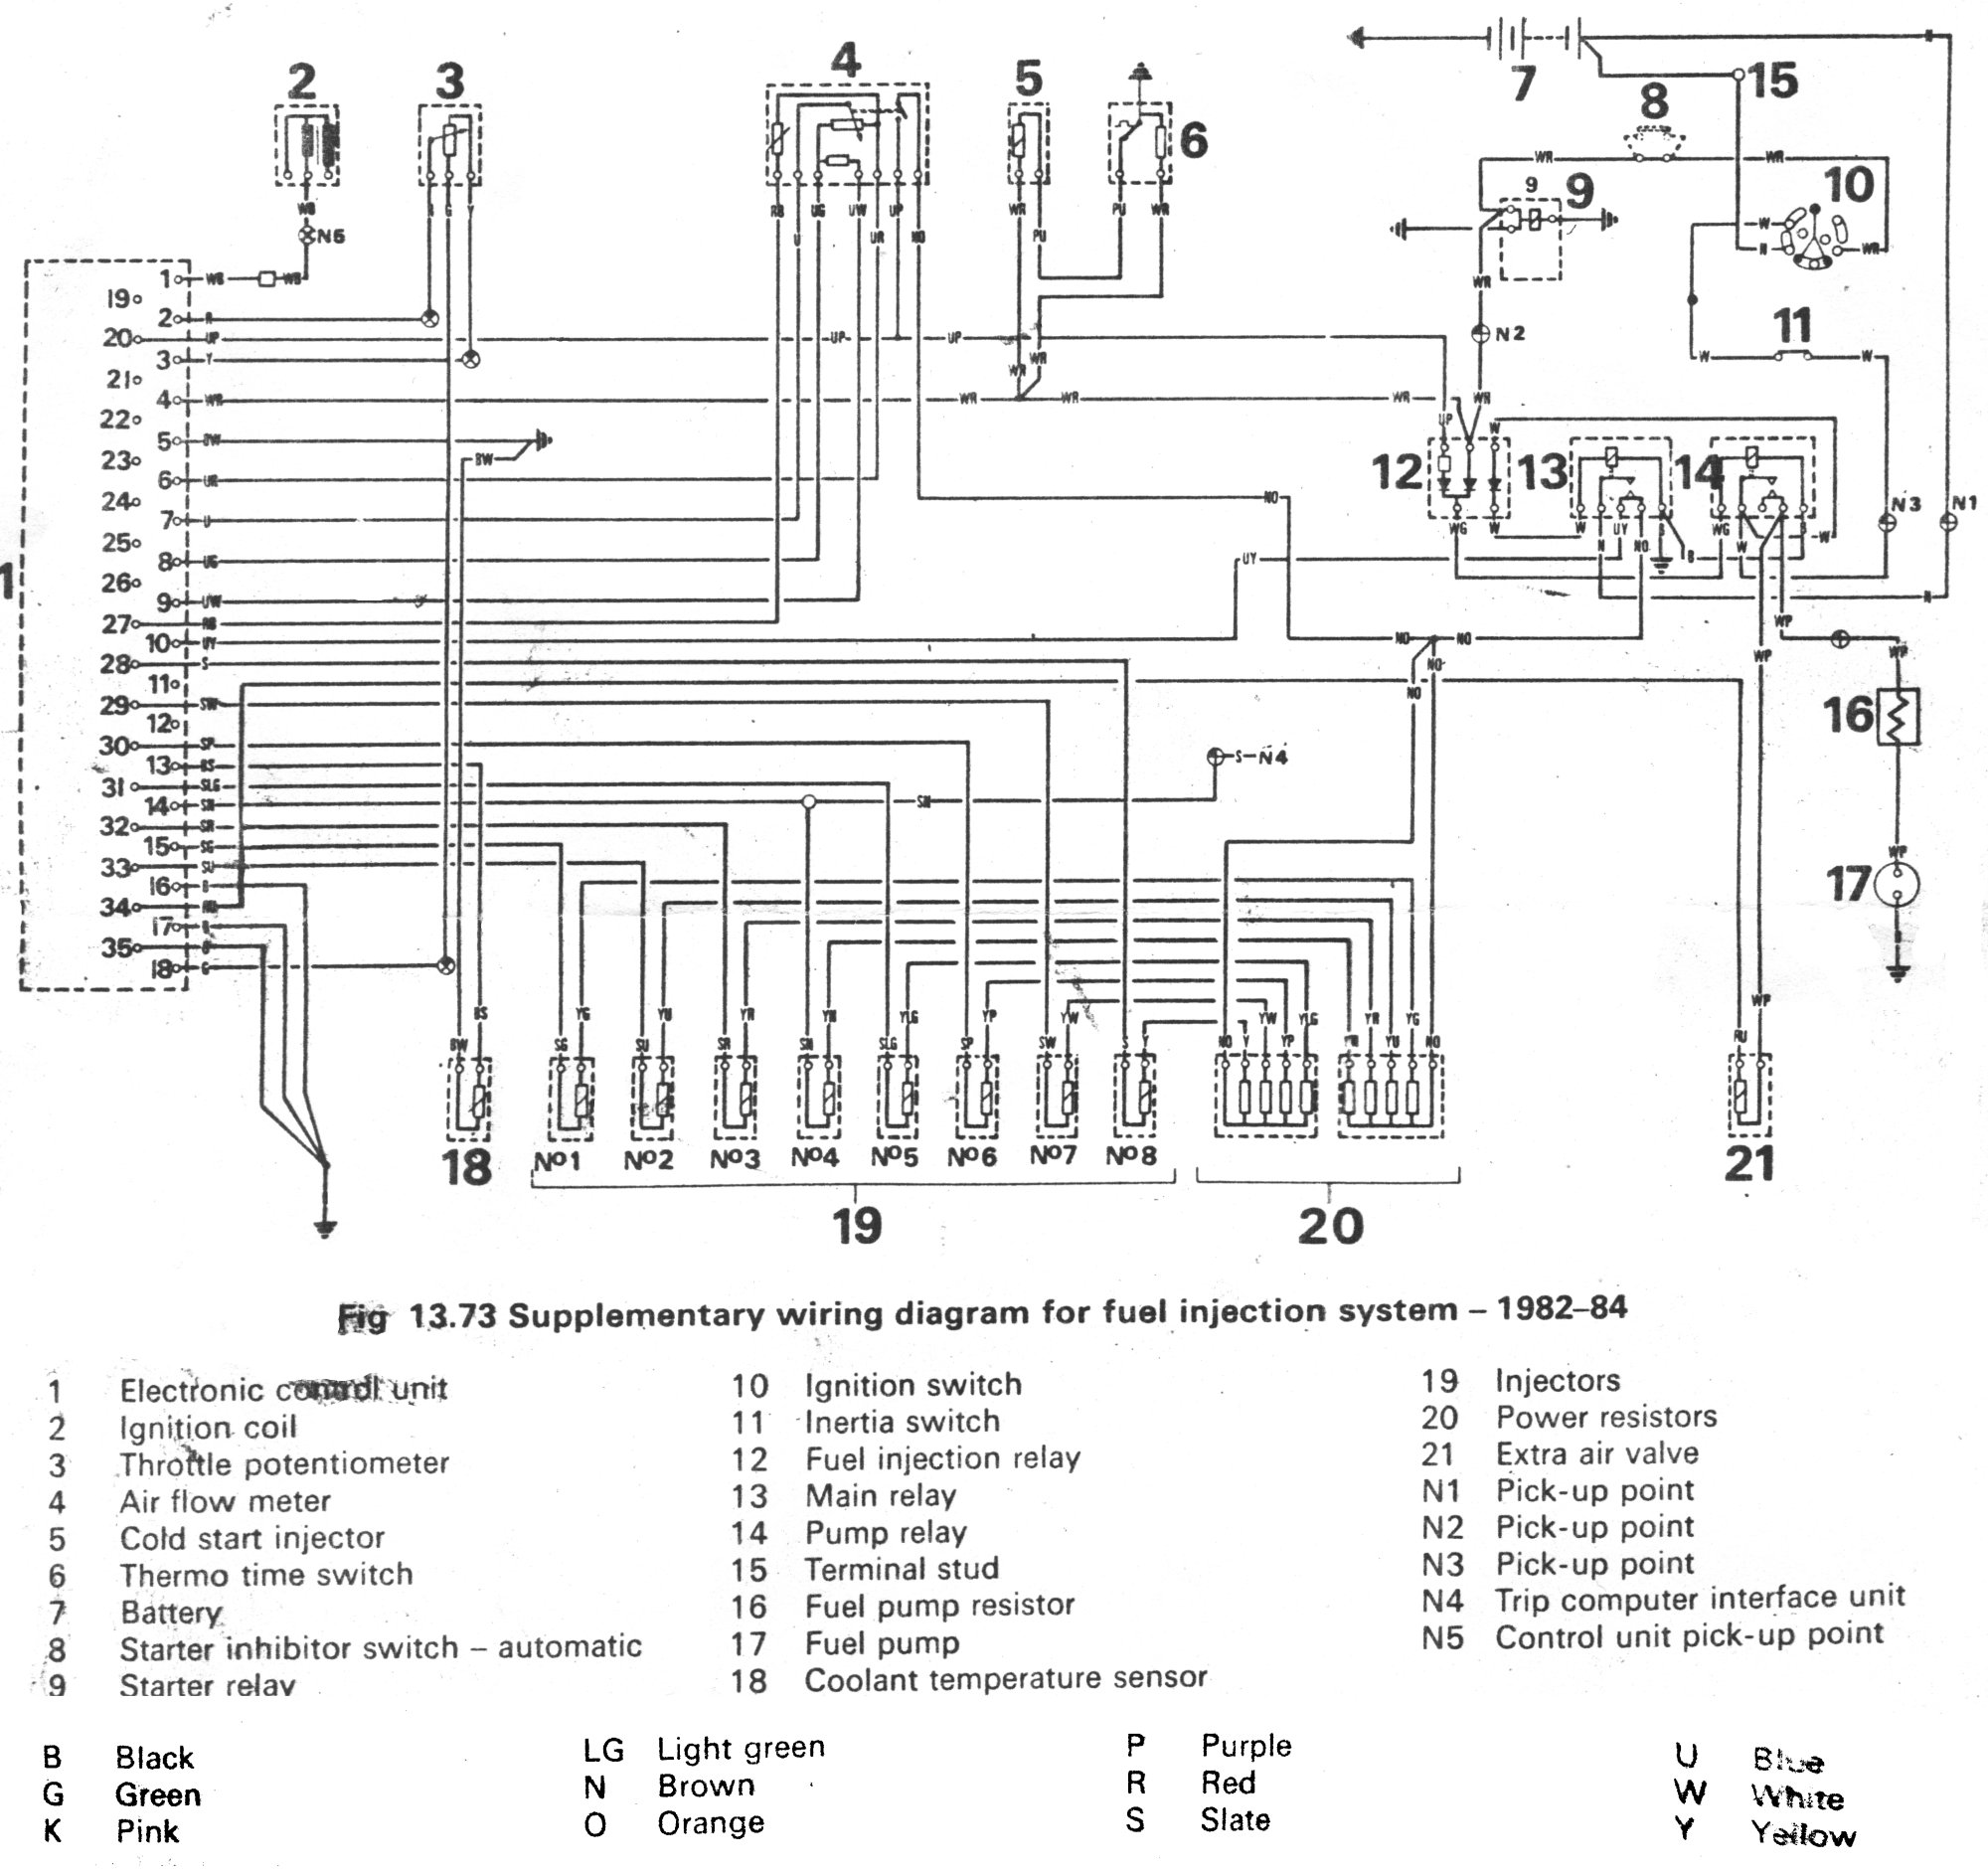 1999 ford ranger xlt fuse box diagram TgqcMDc wiring diagram for car 1998 ford f 150 wiring diagram 1999 ford ranger ignition switch wiring diagram at alyssarenee.co